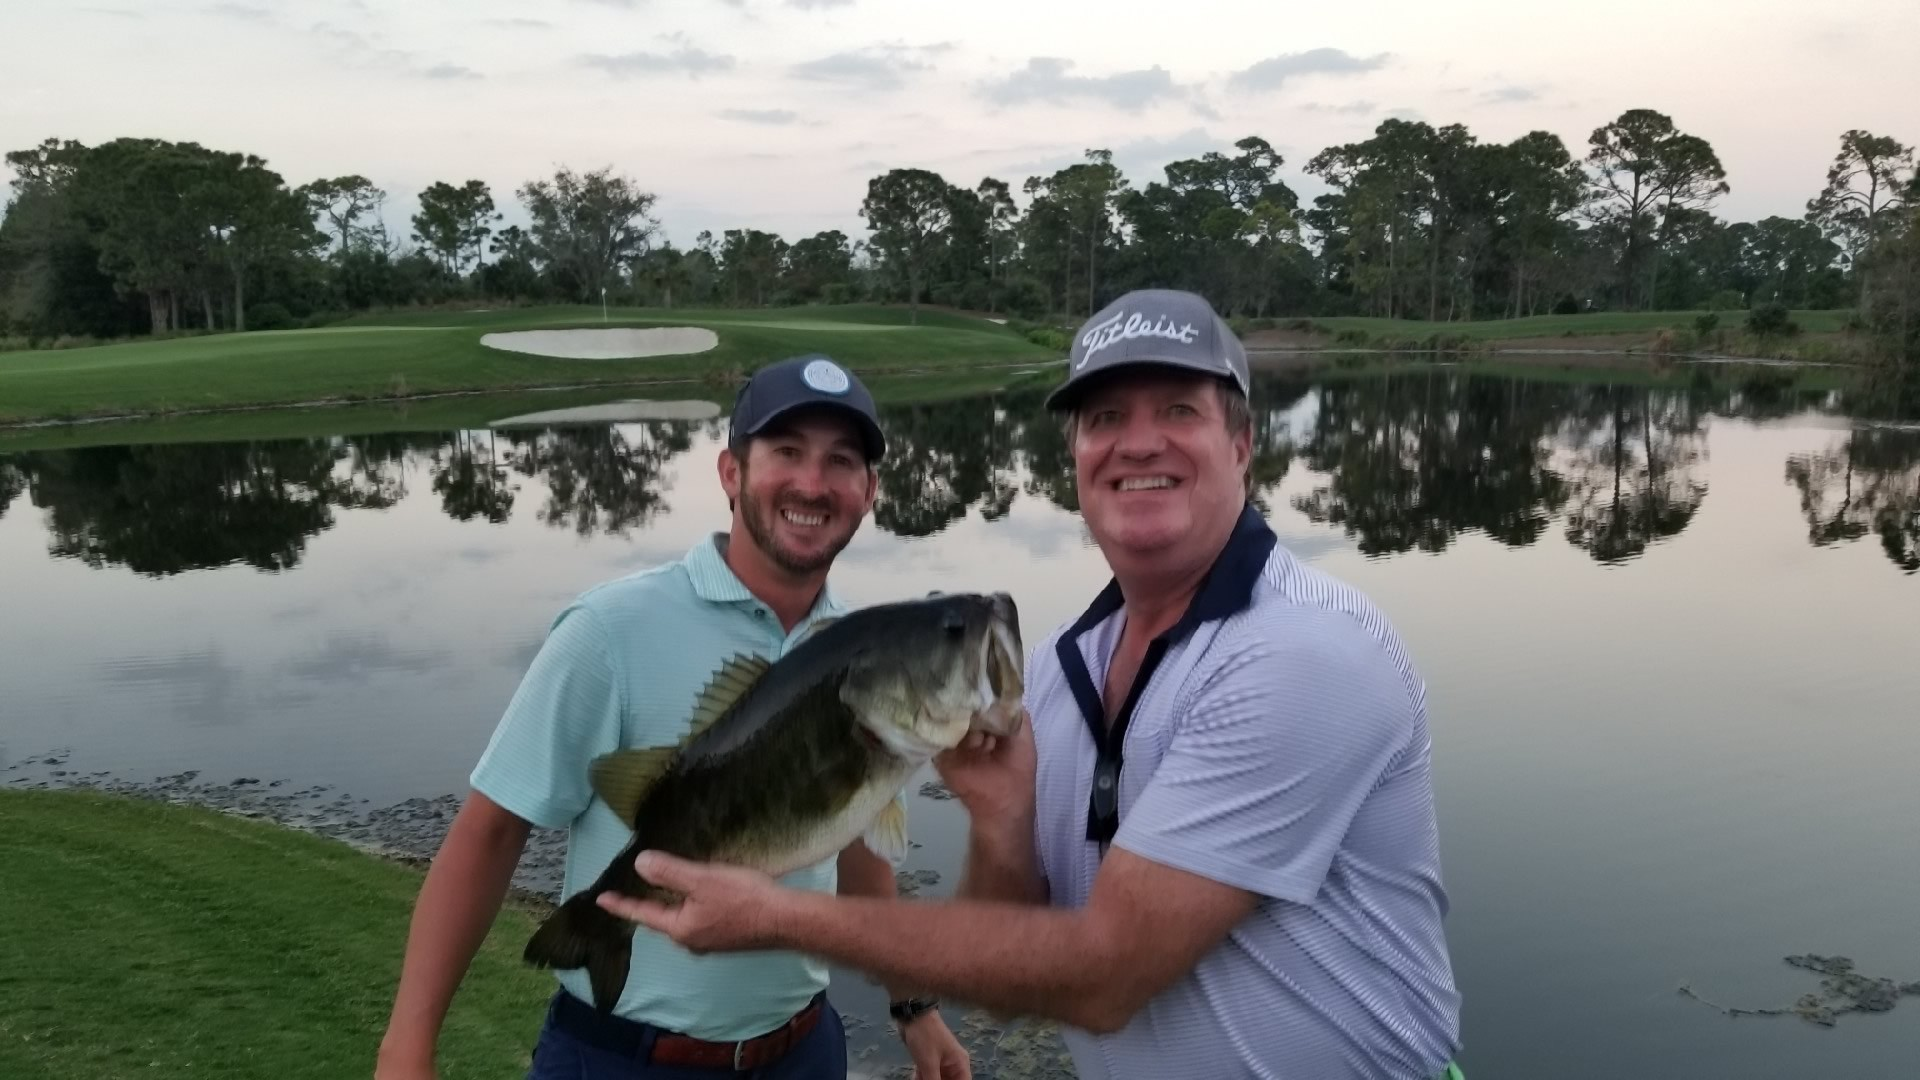 Andrew Landry's Victory, Upcoming Zurch Classic, & Russel Knox